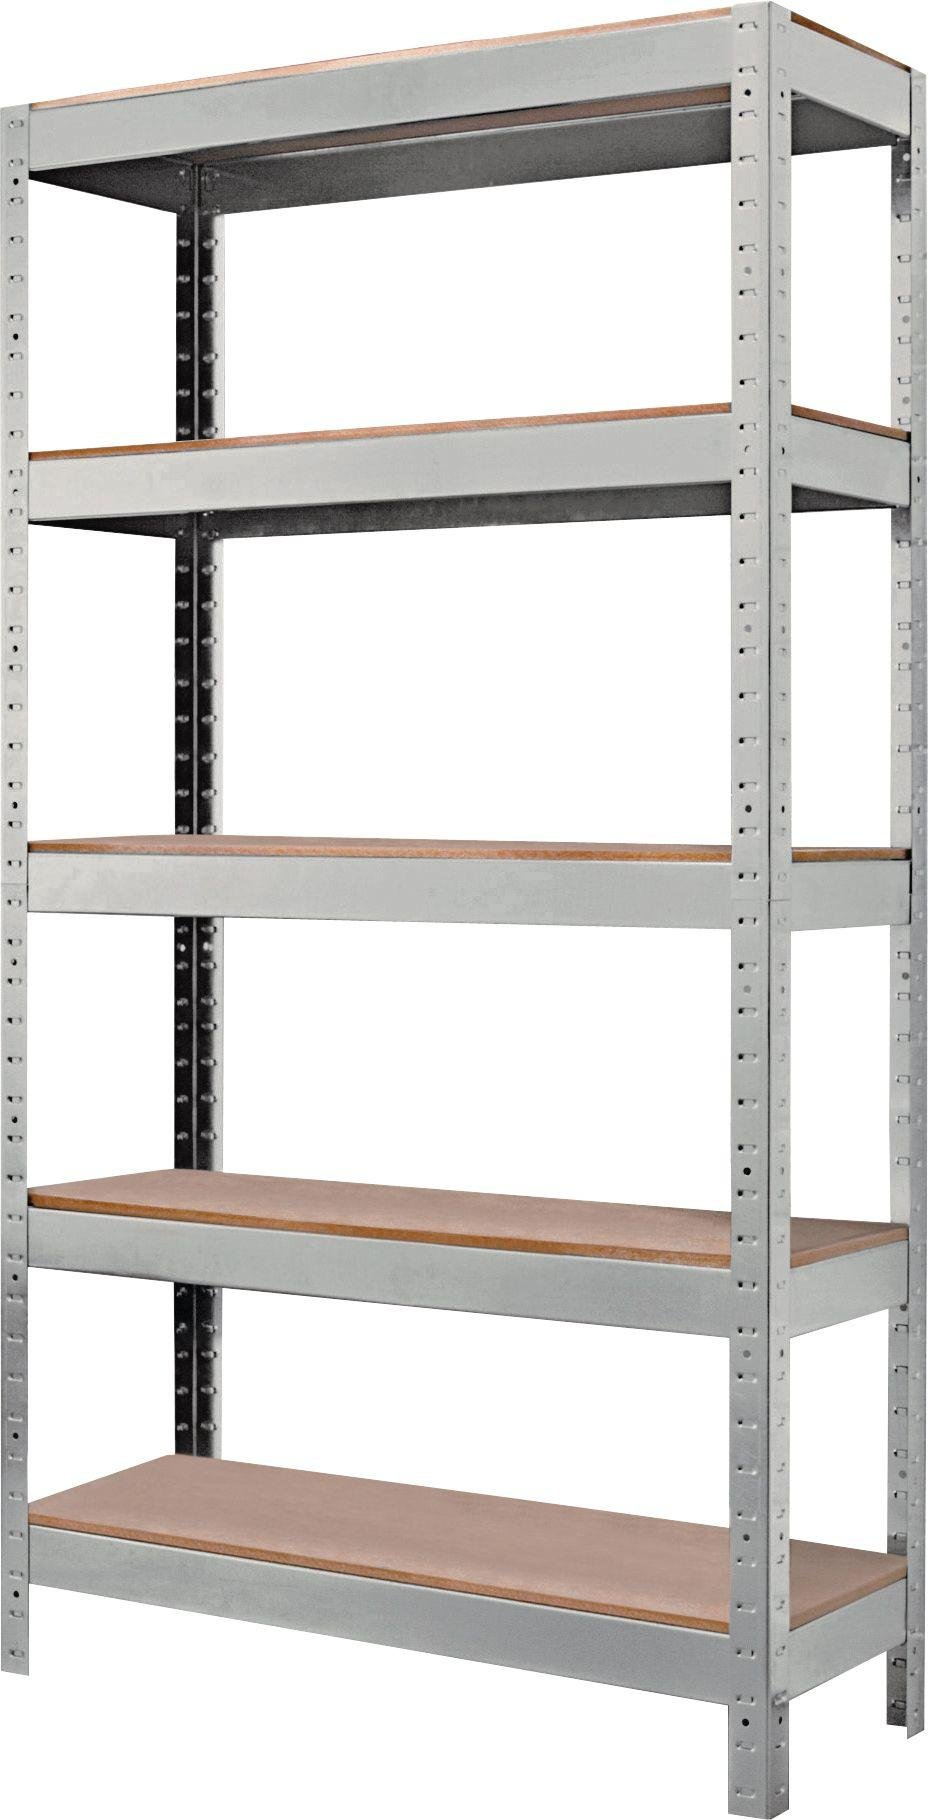 quick assembly 5 tier steel garage shelving storage unit